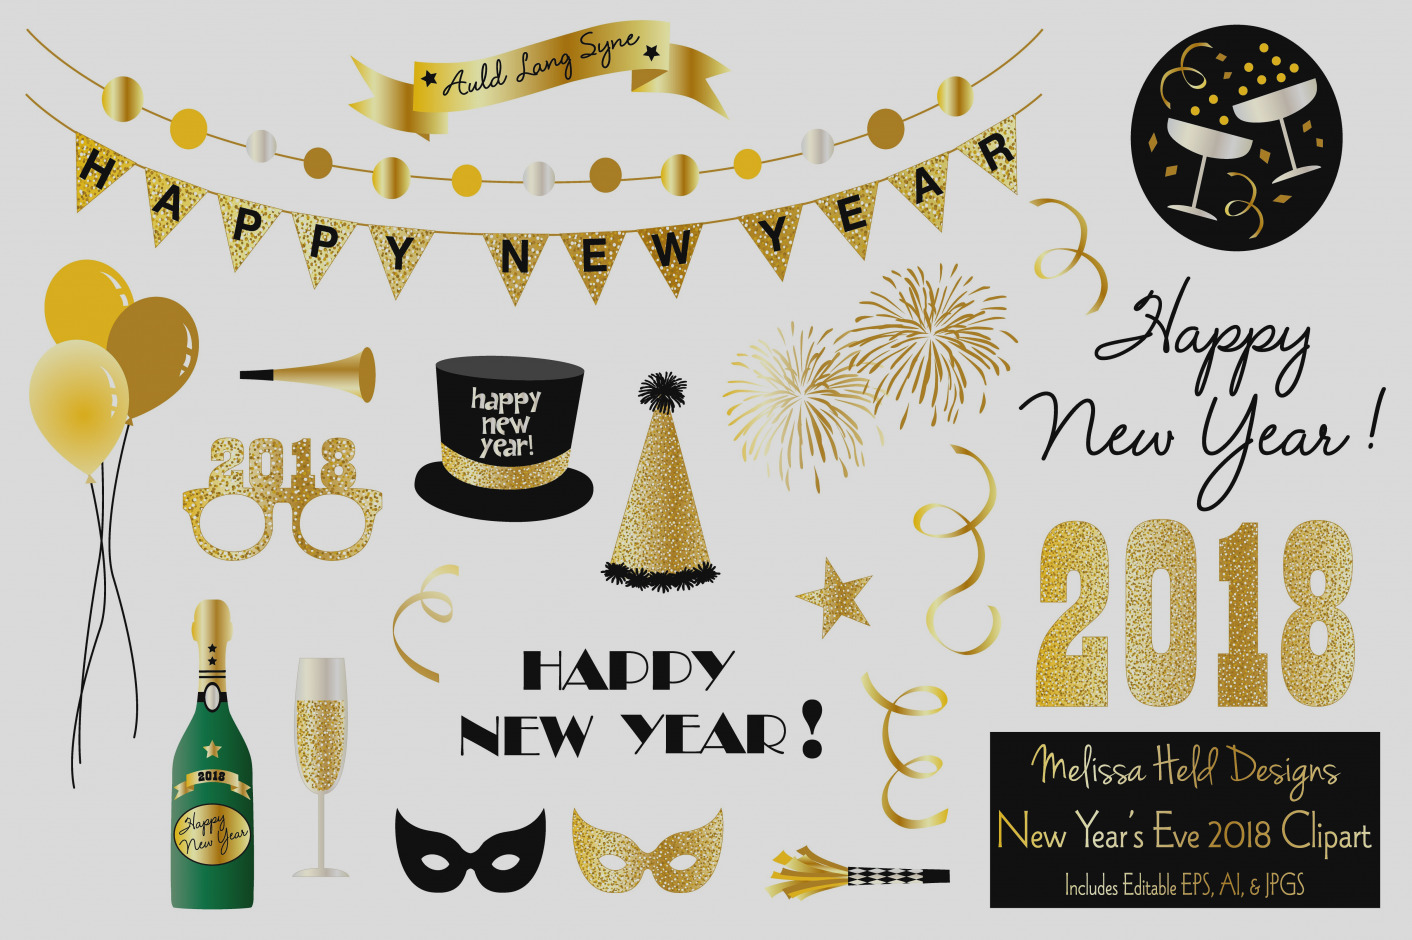 hight resolution of years free clipart years eve new pictures clip art image freeuse stock